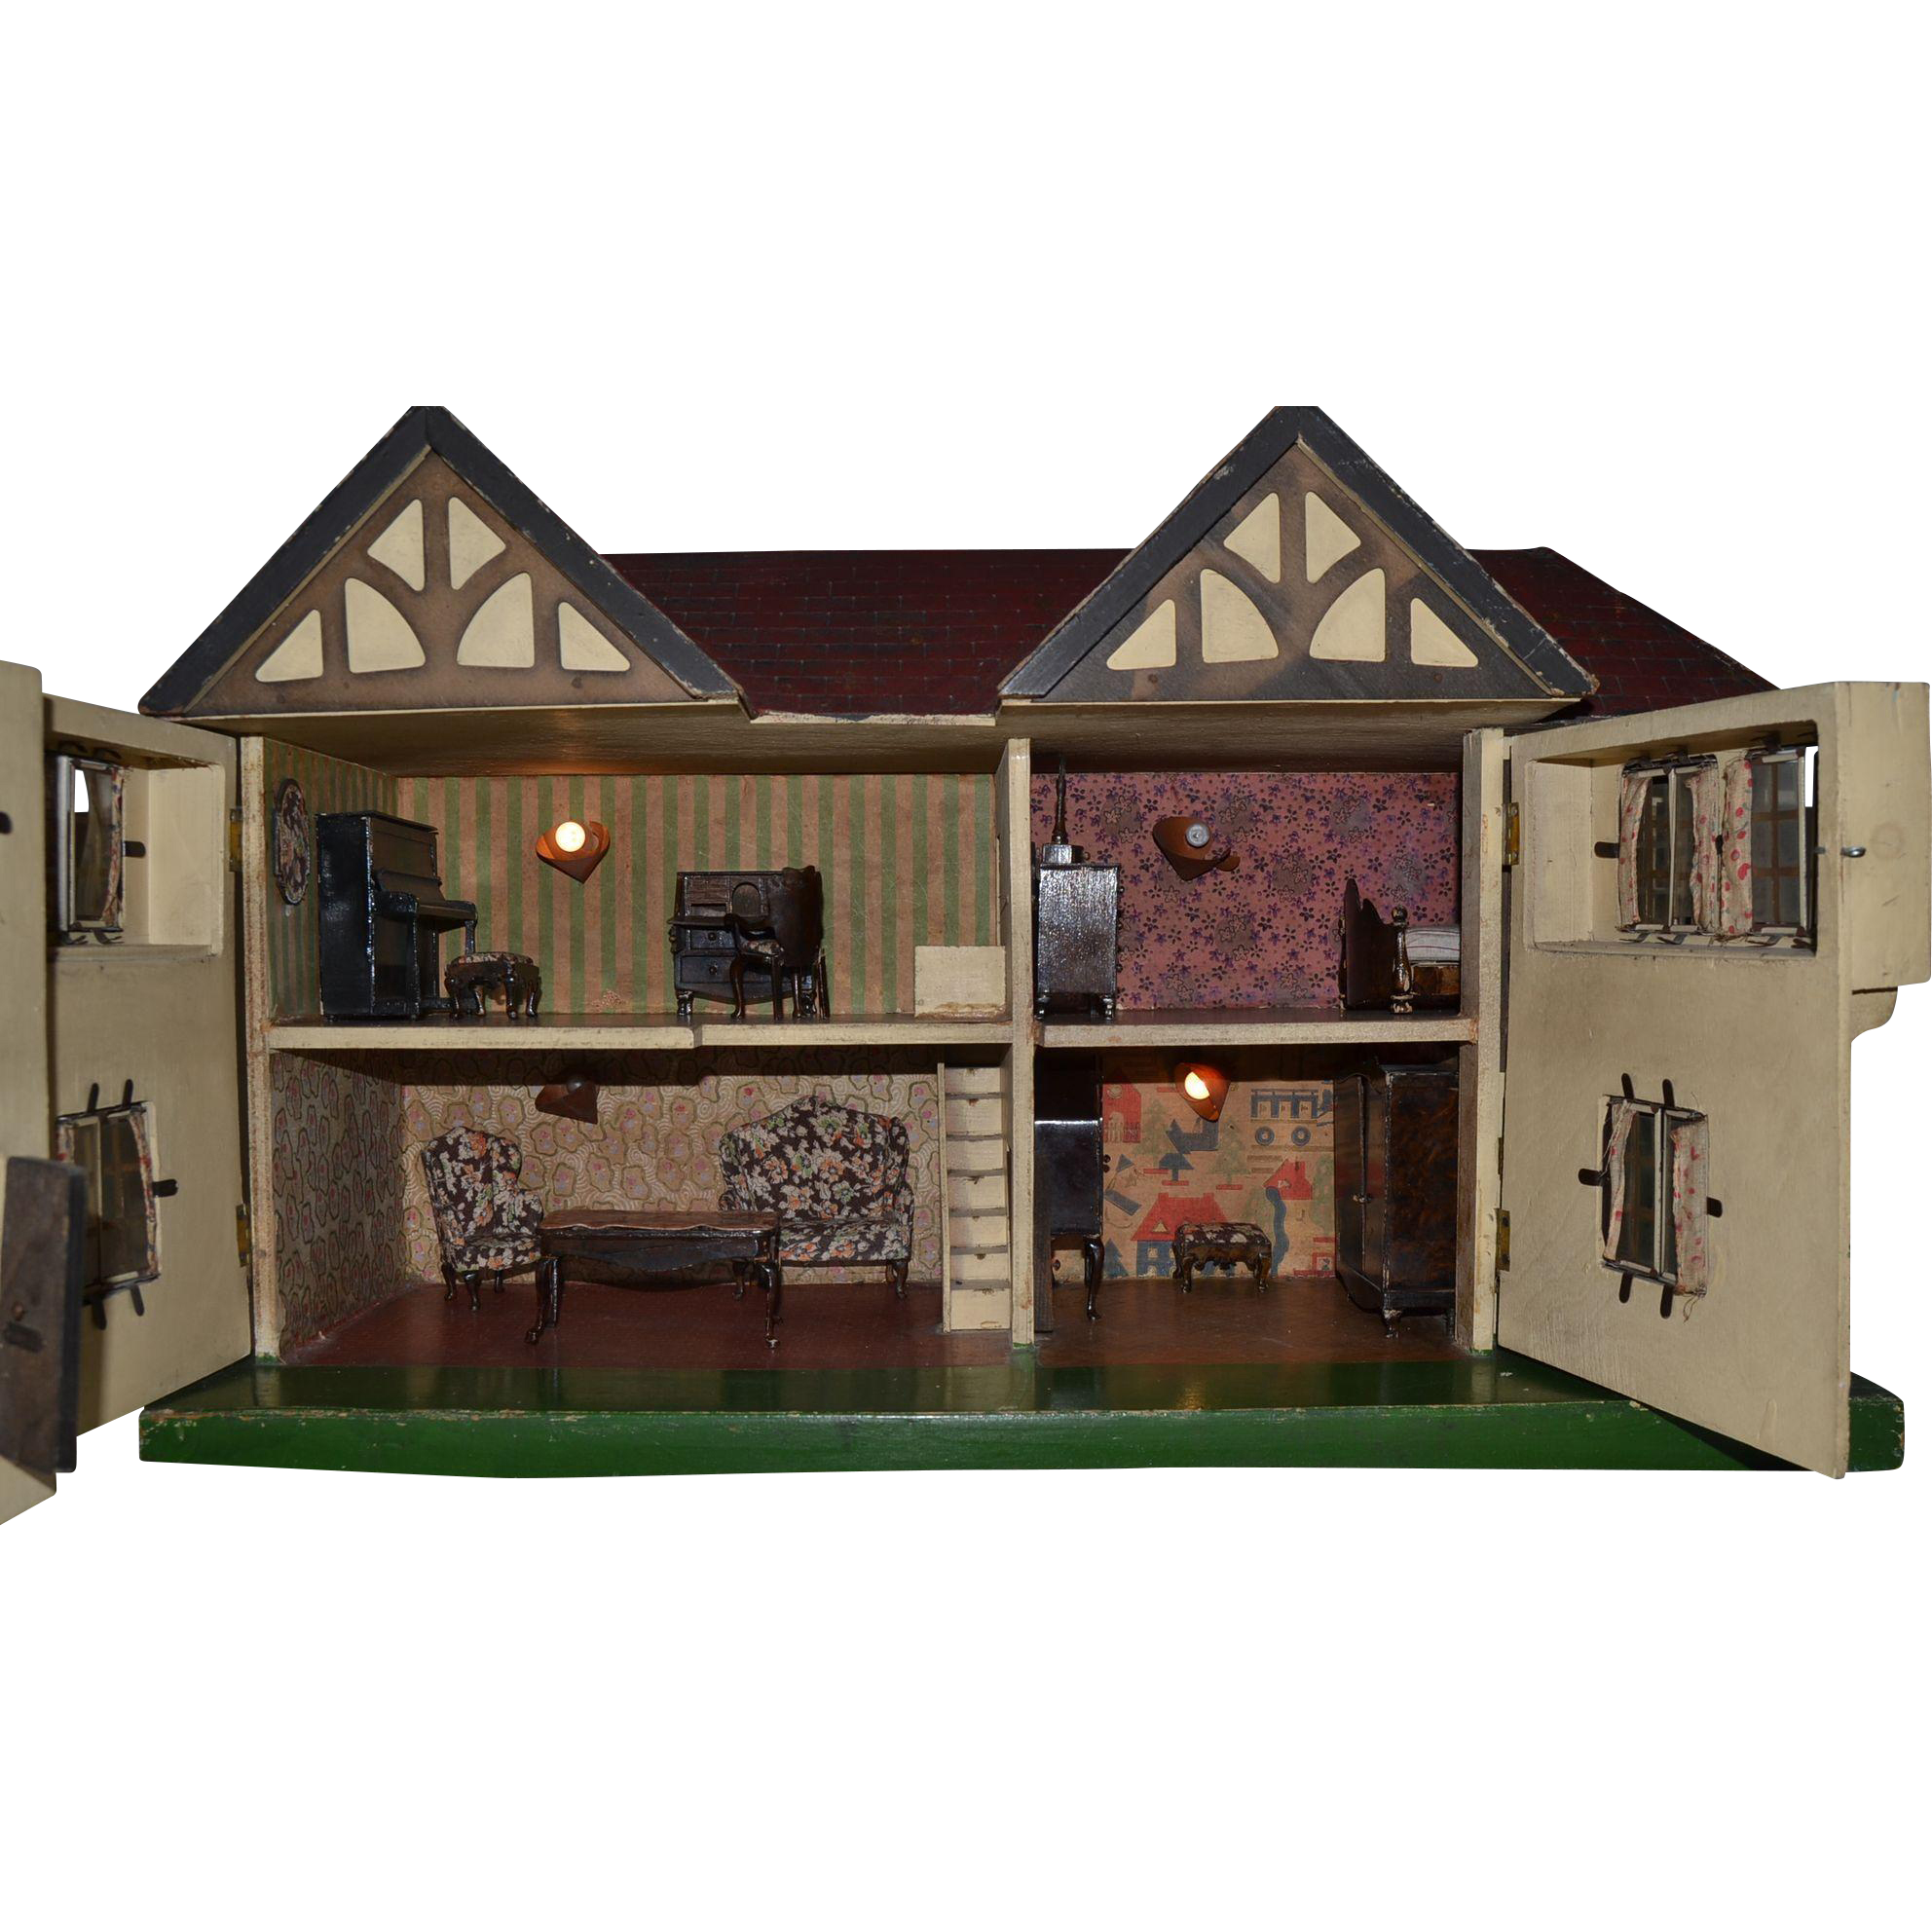 a description of a dolls houses central theme secession from society